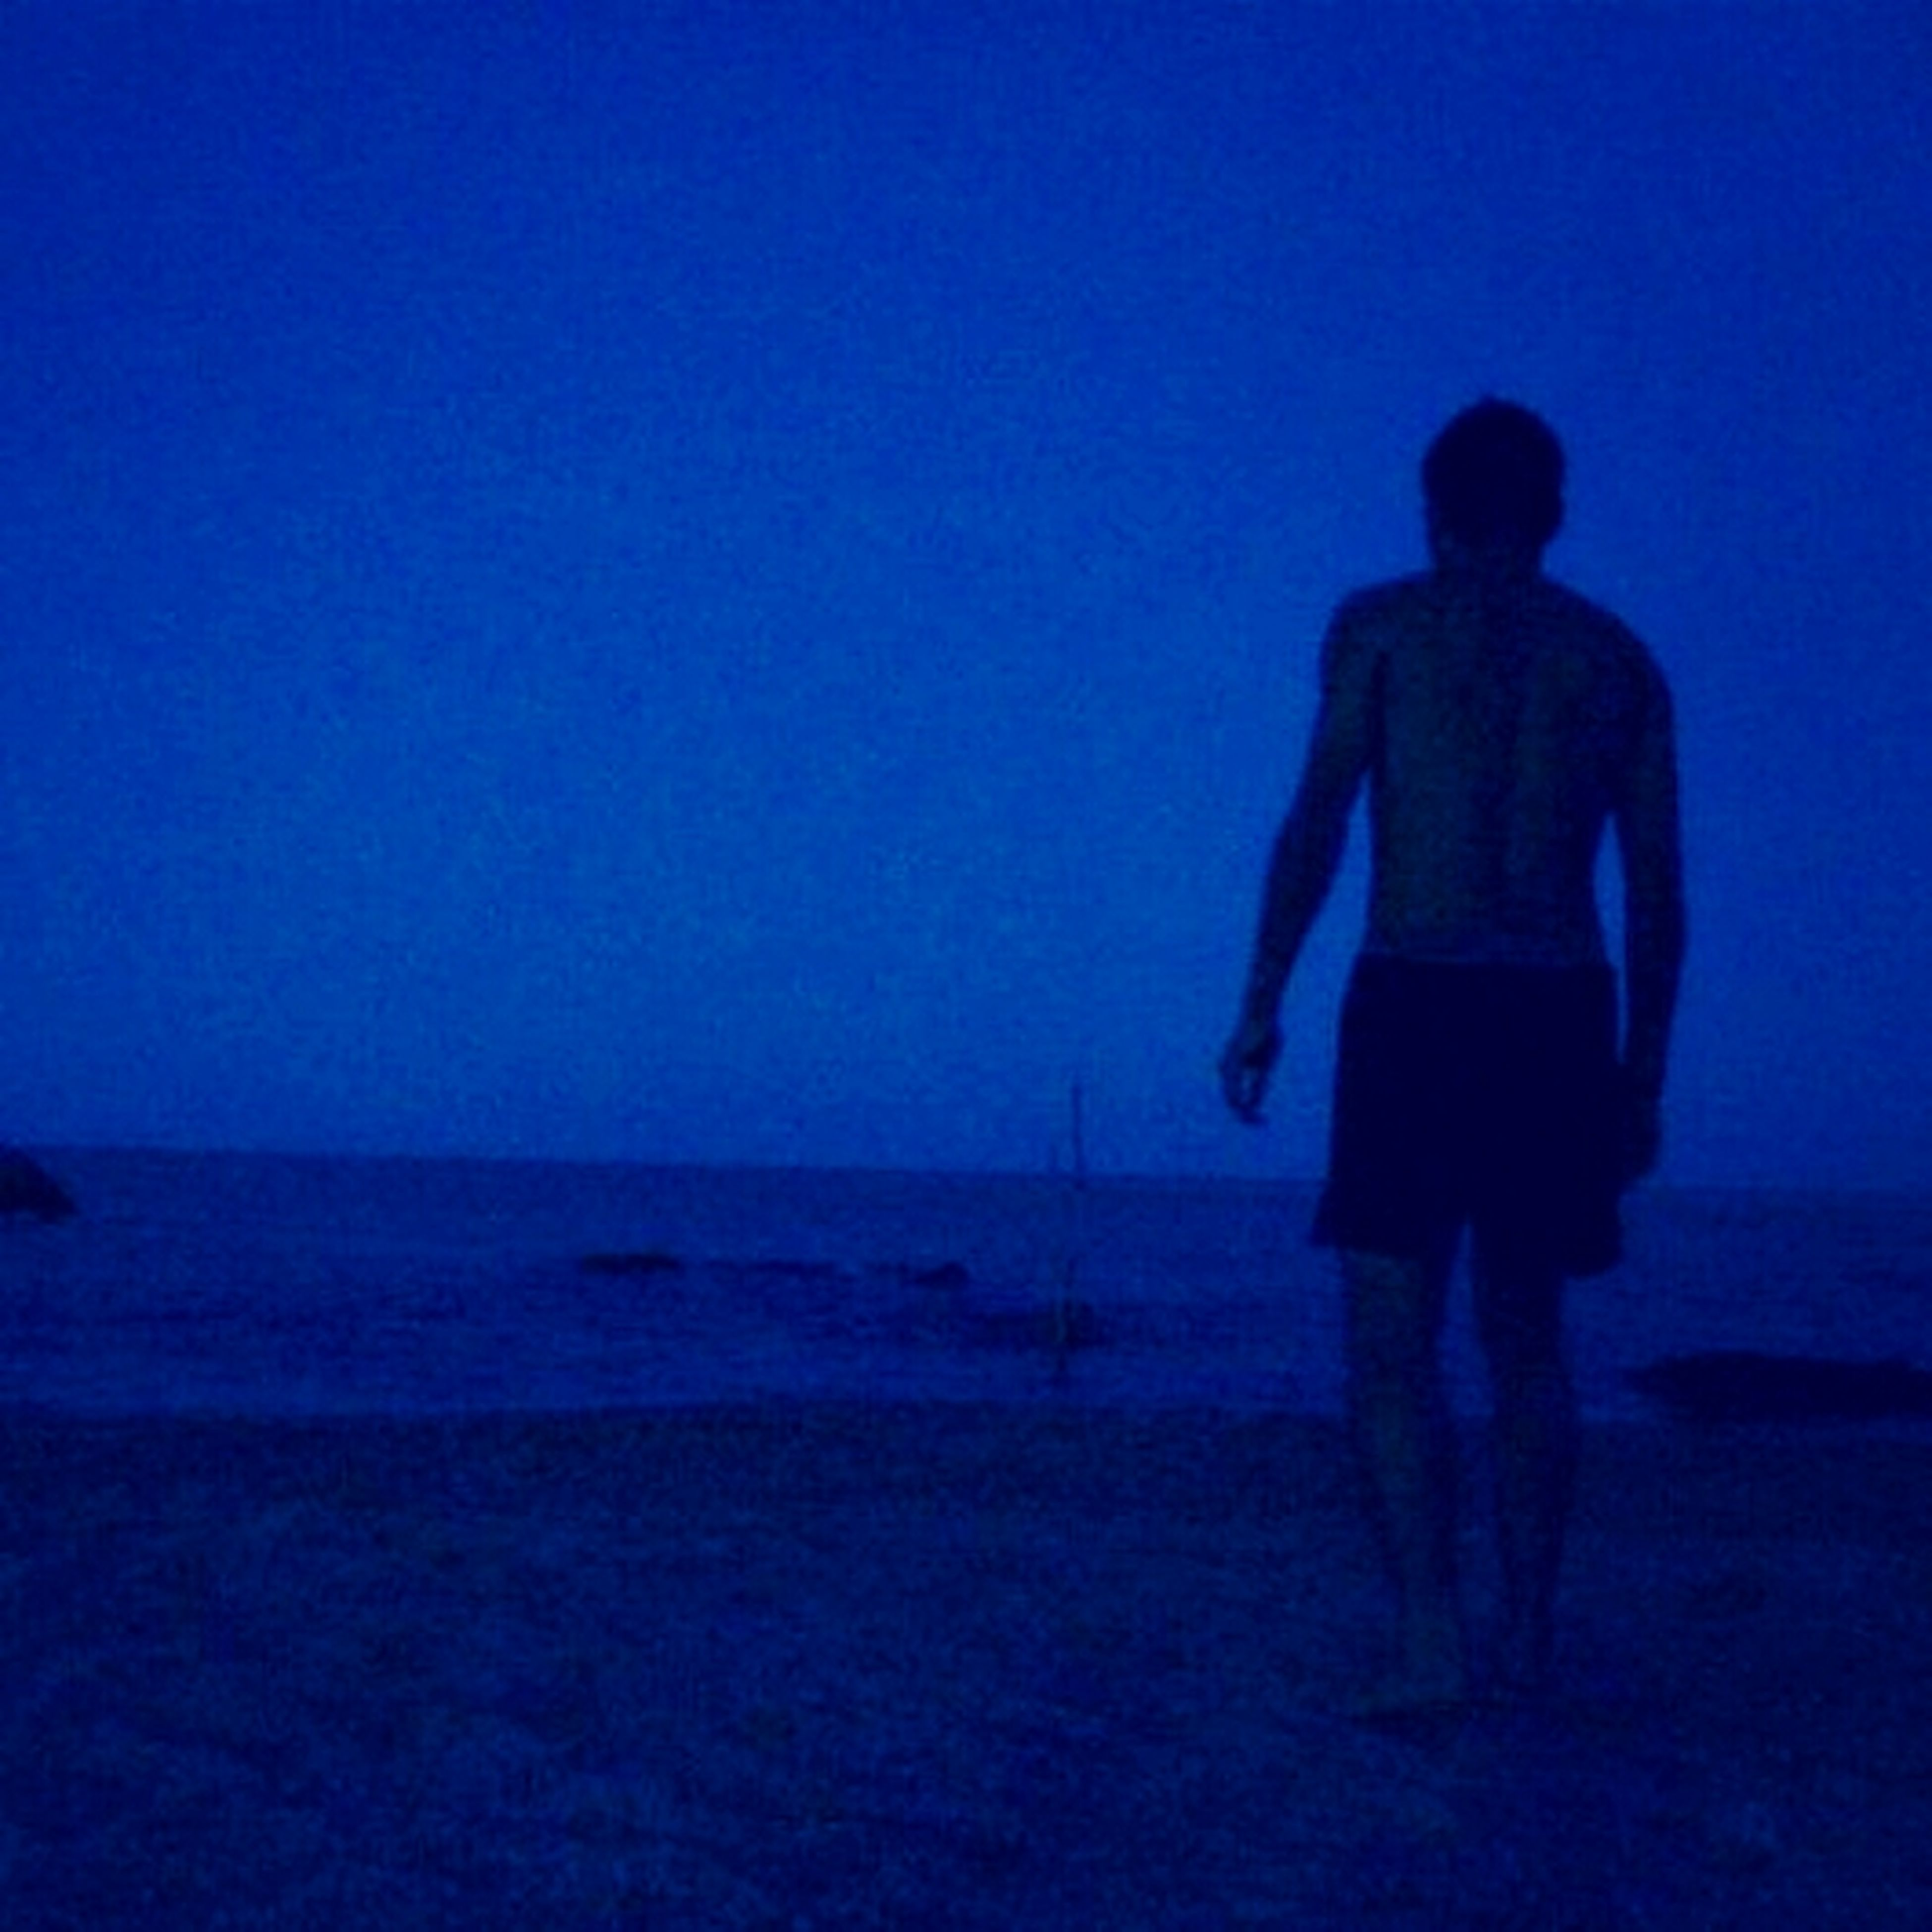 clear sky, copy space, blue, lifestyles, full length, silhouette, leisure activity, sea, men, standing, rear view, horizon over water, water, beach, tranquility, walking, person